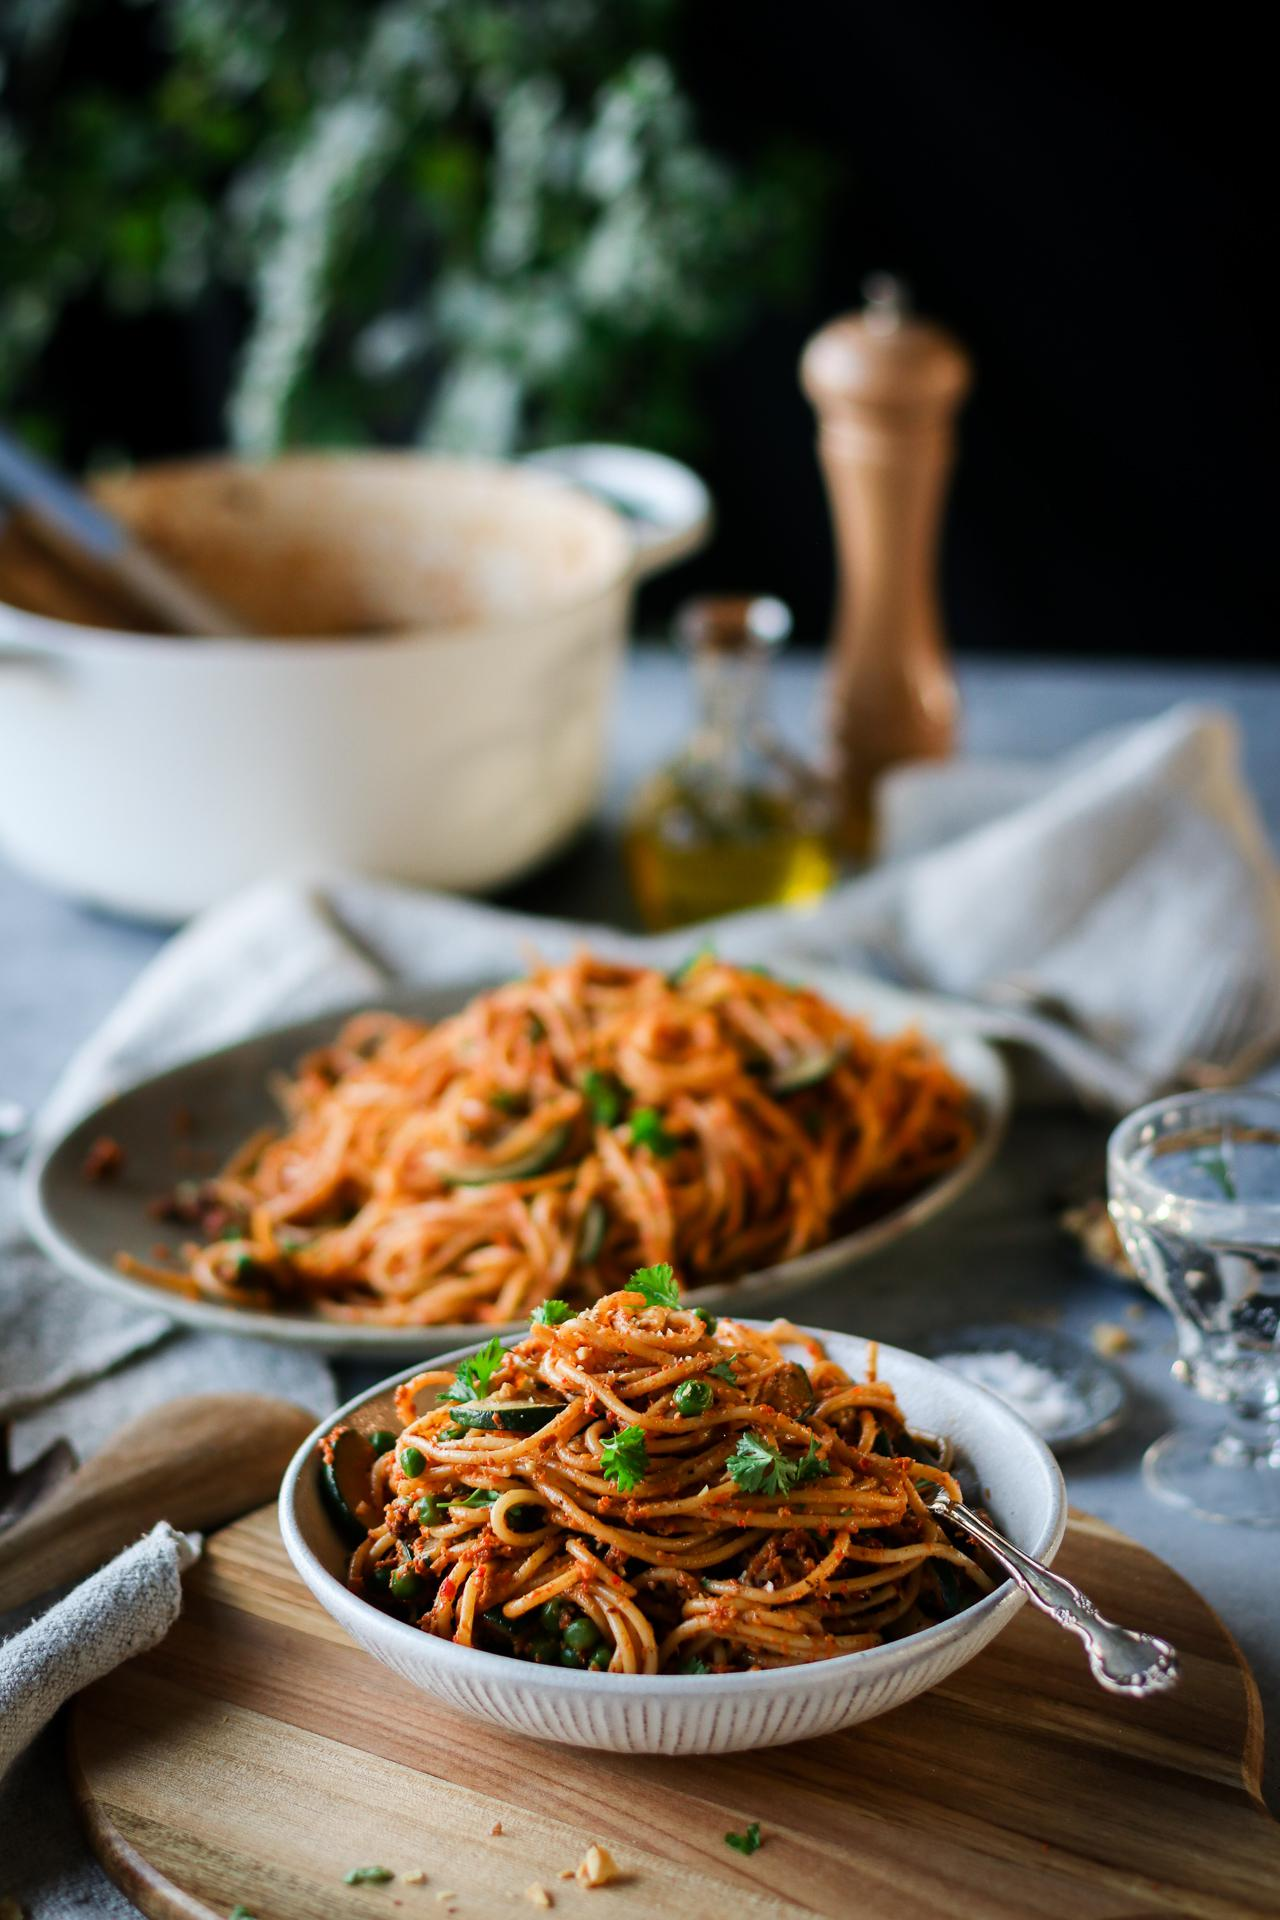 Main image of Grilled Red Pepper Pesto Pasta